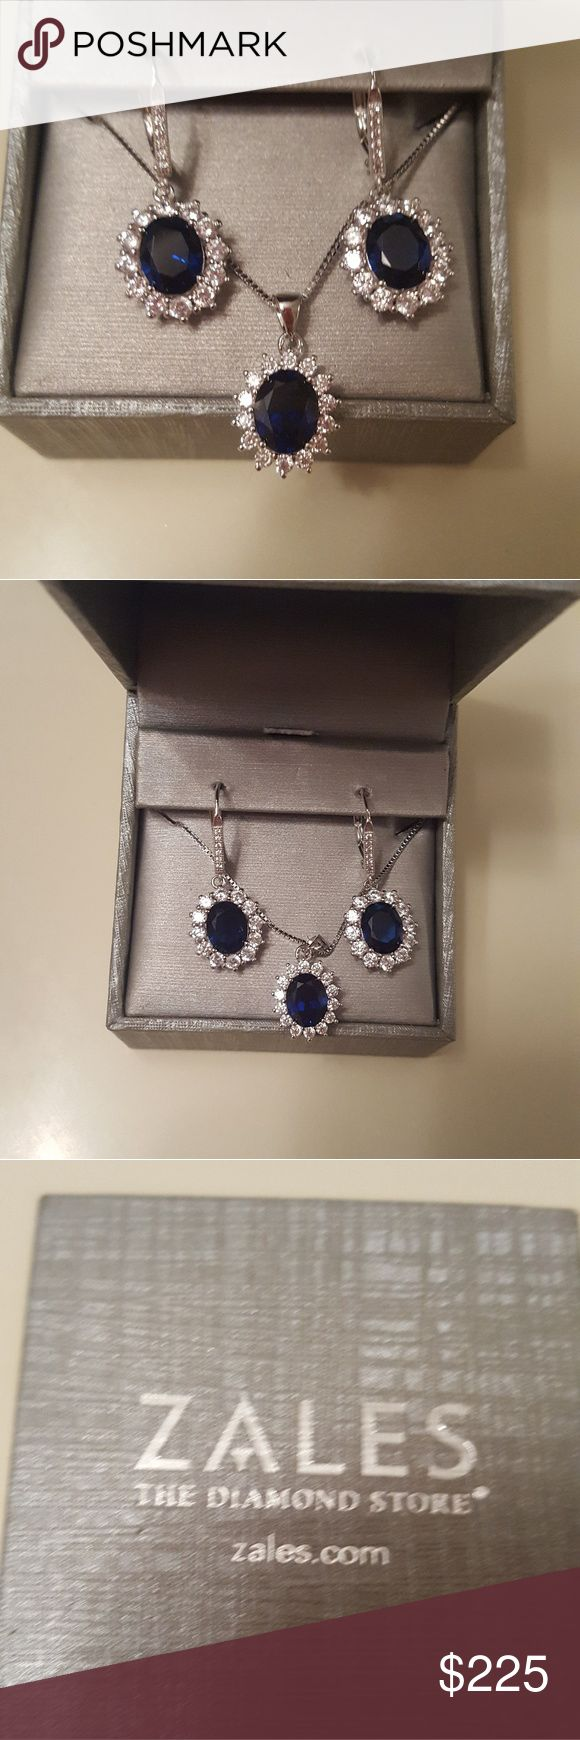 Nwt Sapphire Necklace & Earring Set From Zales This is a new Necklace & earring set from Zales. The Necklace is a 2k Sapphire oval shaped with 2k Sapphire earrings surrounded by small lab created diamonds.  The necklace is 18 inches long, the earrings are clasp earrings, stamped. Never worn, kept in safe. I dont know if i will sell here for my price, I will post more photos asap. Retail is $499 bought at $400, sale. PERFECT FOR XMAS FOR A SIGNIFICANT OTHER!!! Would like half for what I paid…